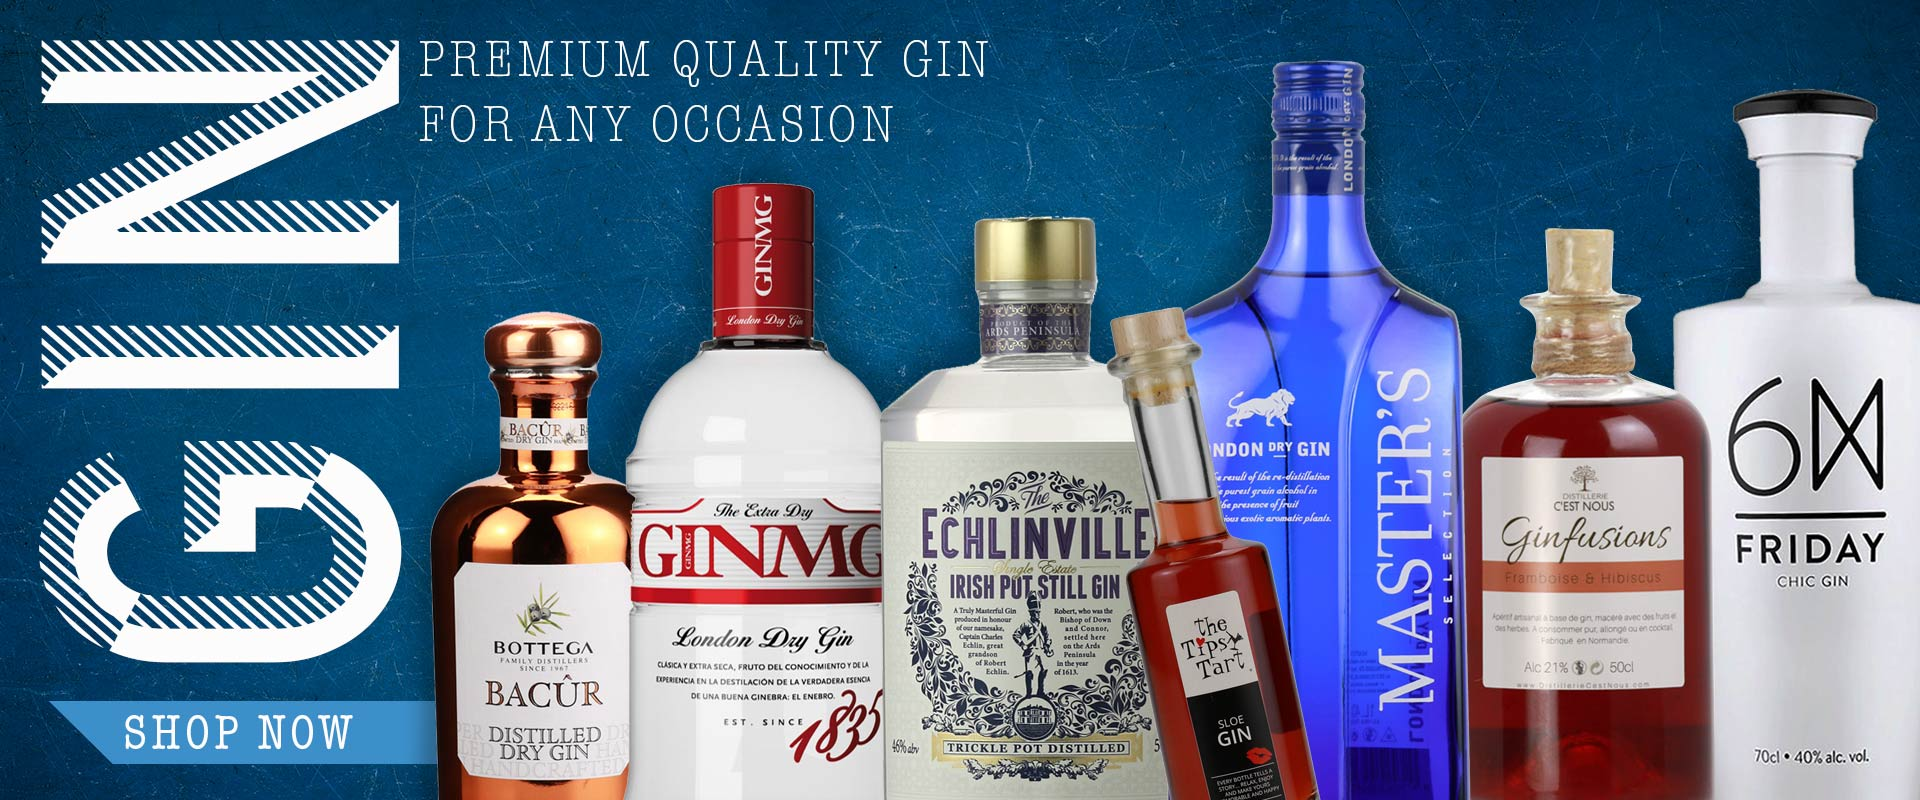 Premium Gin for any Occaision